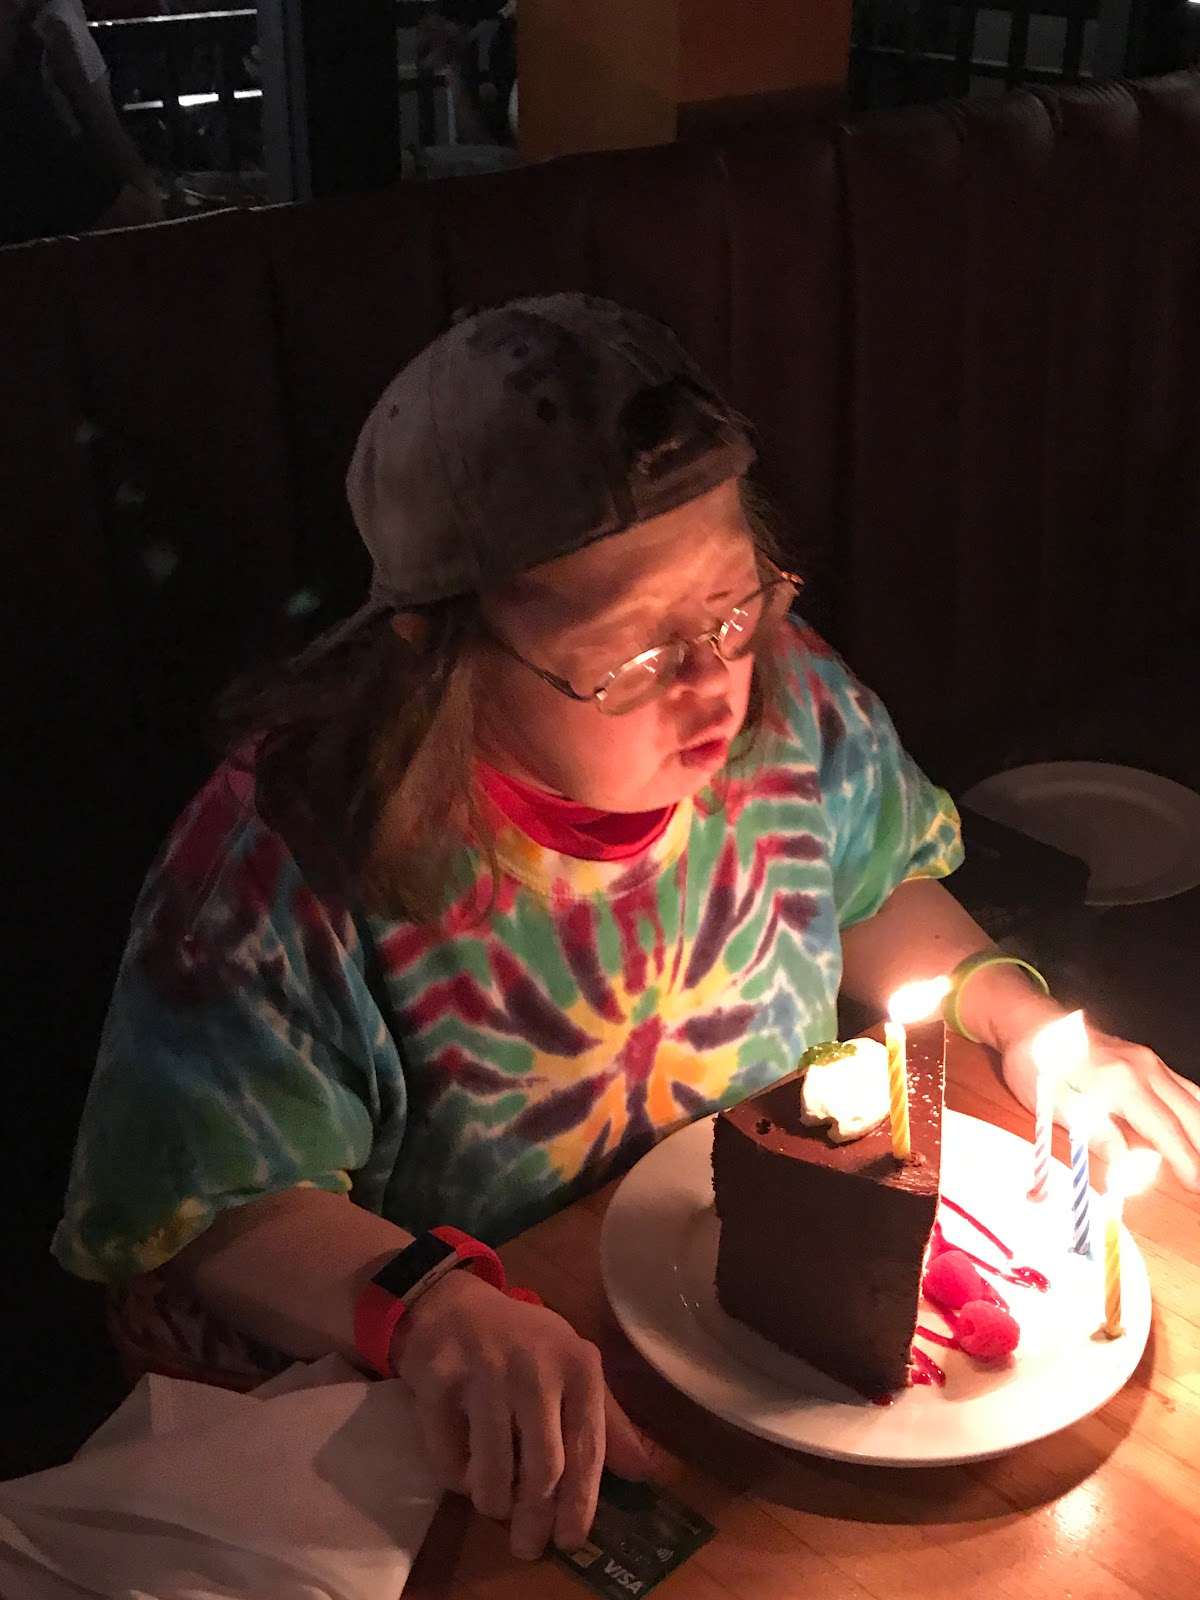 Teresa blows out a candle on her birthday cake at the Flying Pig restaurant in Gastown. Photo: Franke James